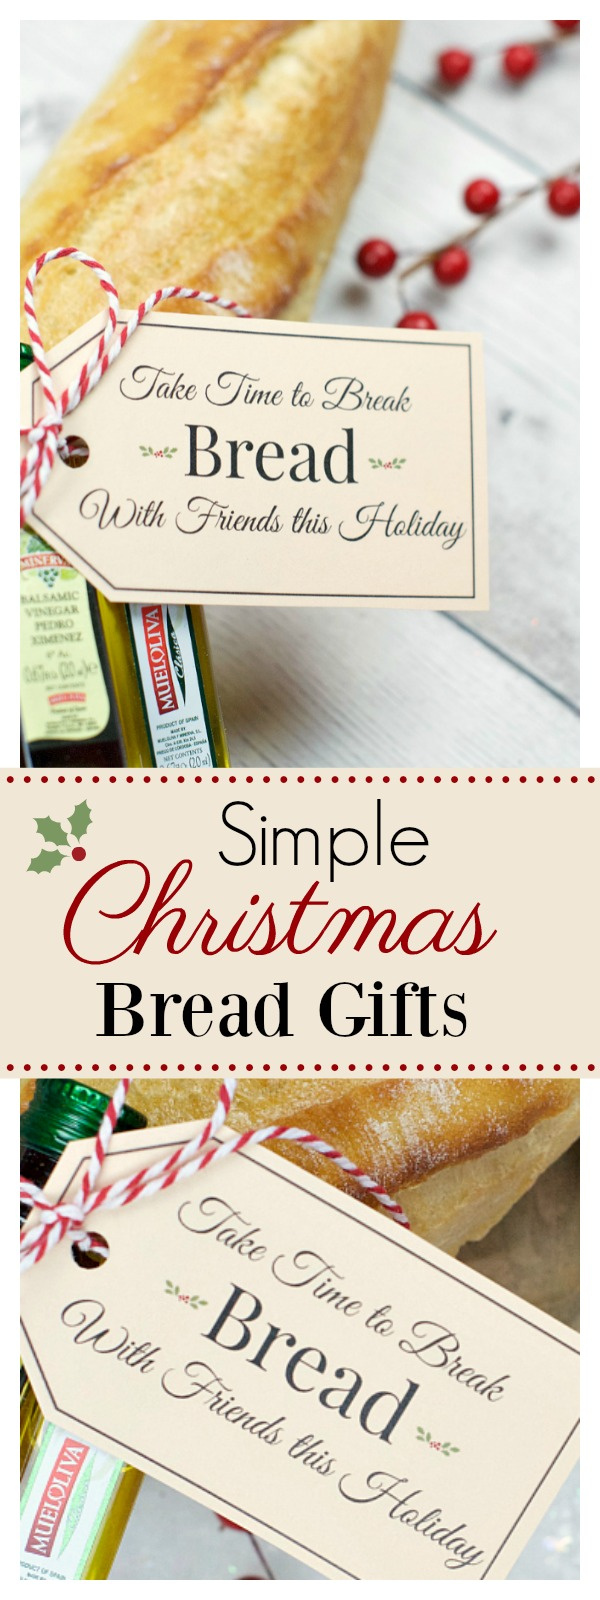 Bread Gift Idea for Christmas-Great for Neighbors and Friends